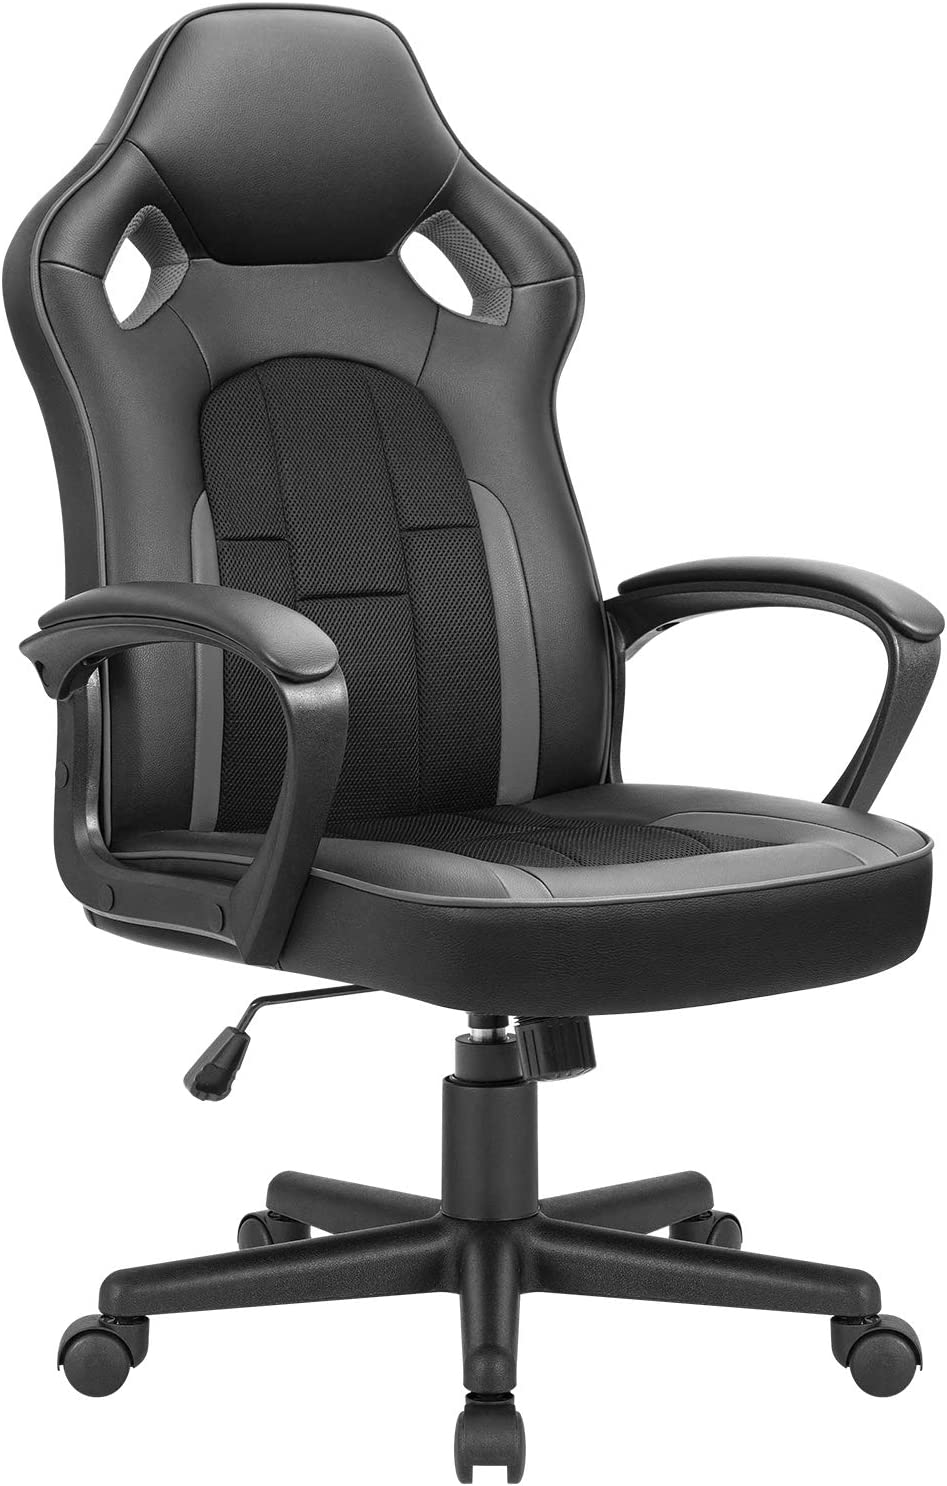 JUMMICO Gaming Chair Ergonomic Executive Office Desk Chair High Back Leather Swivel Computer Racing Chair with Lumbar Support (Grey)